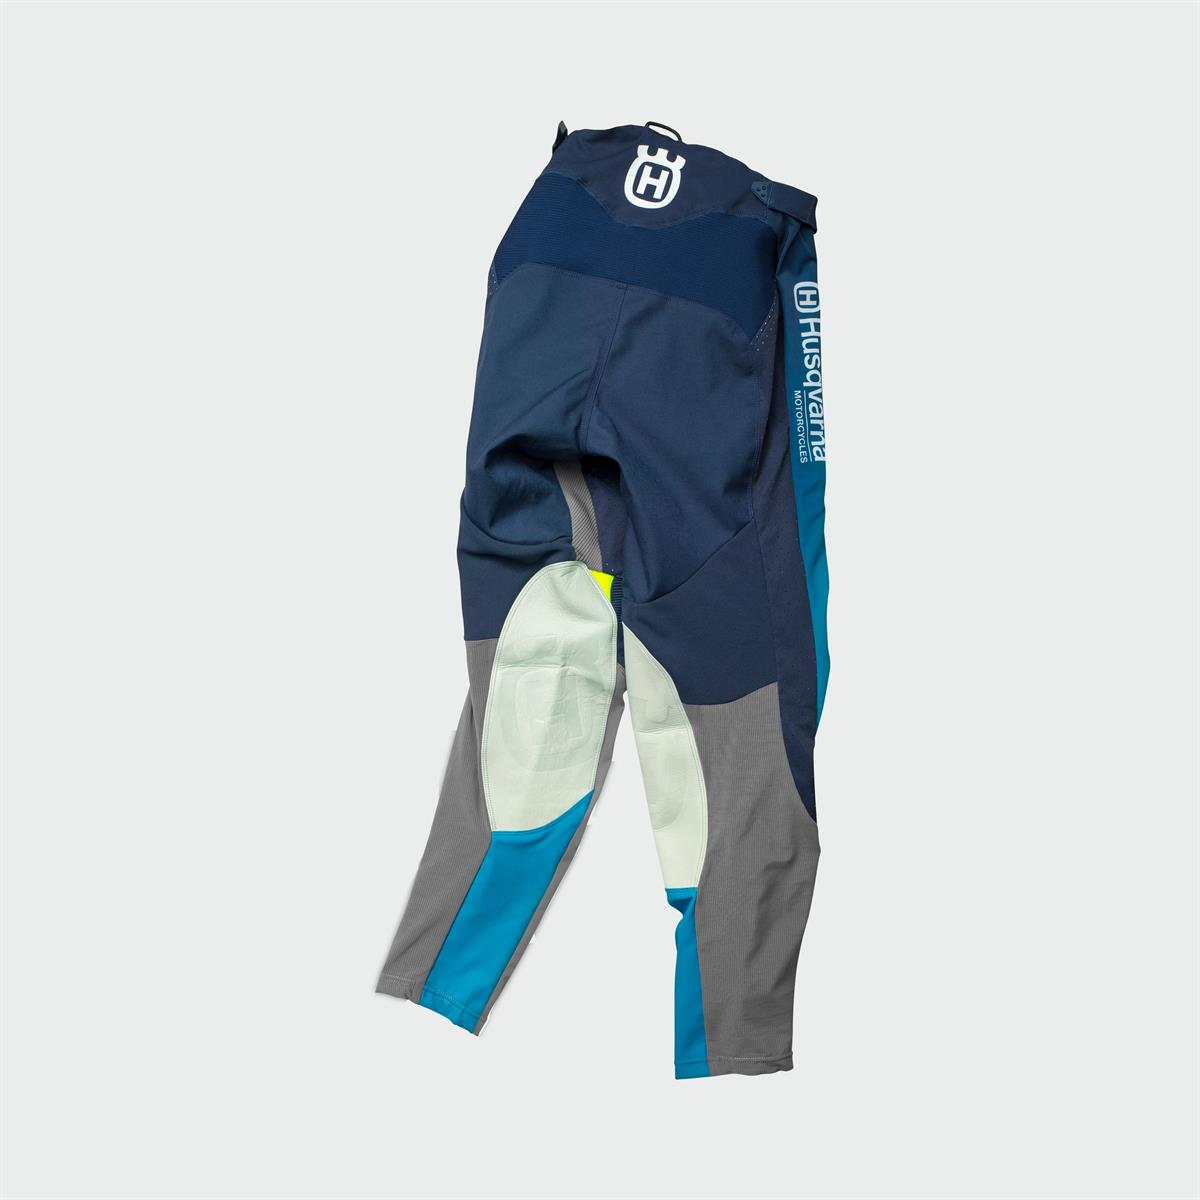 Husqvarna Functional Clothing - GODLAND PANTS